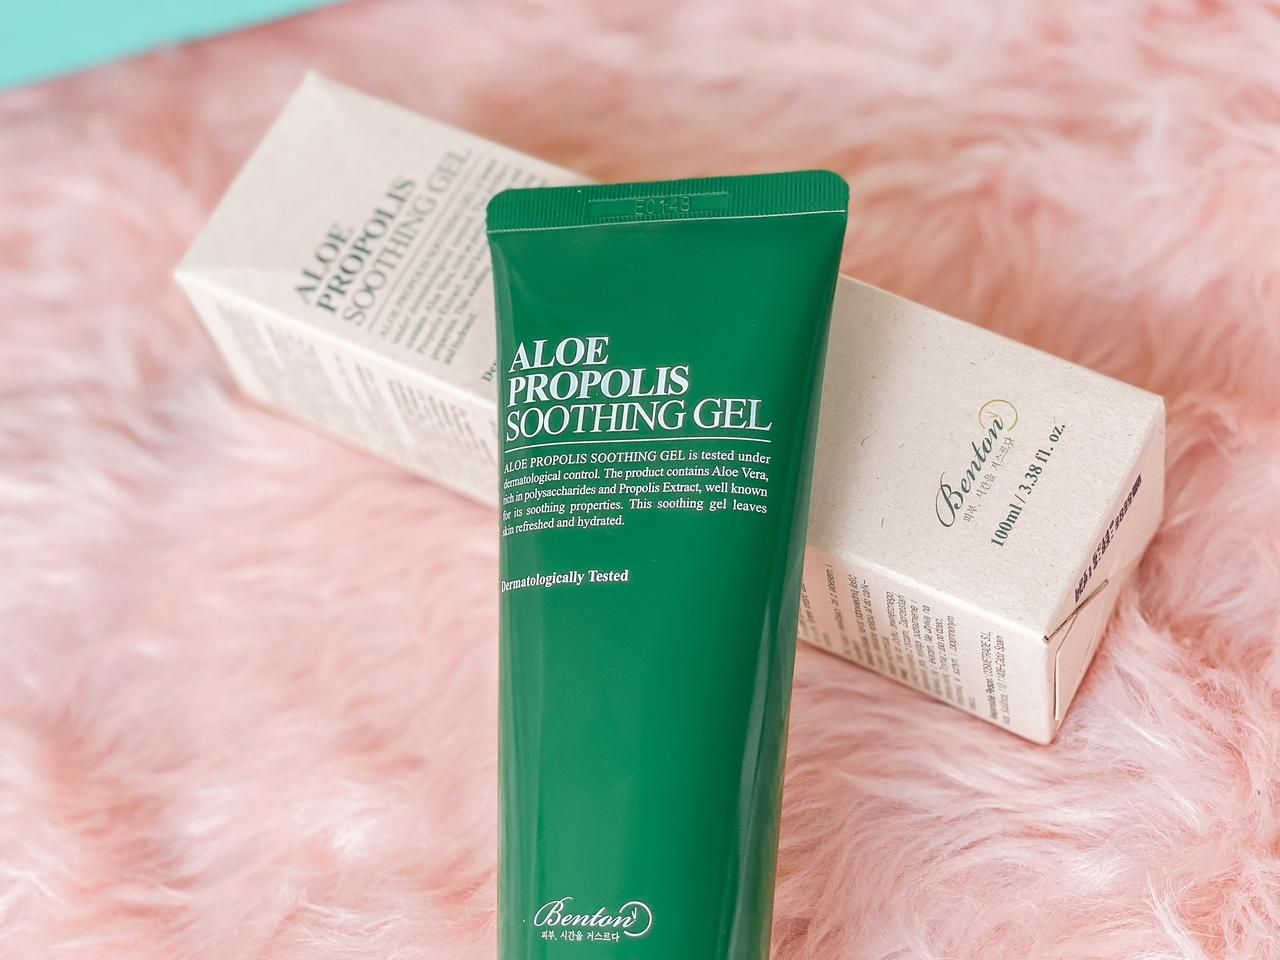 Style Korean Try Me Review Me: First Impressions on Influencers' Favorites from BENTON - BENTON ALOE PROPOLIS SOOTHING GEL